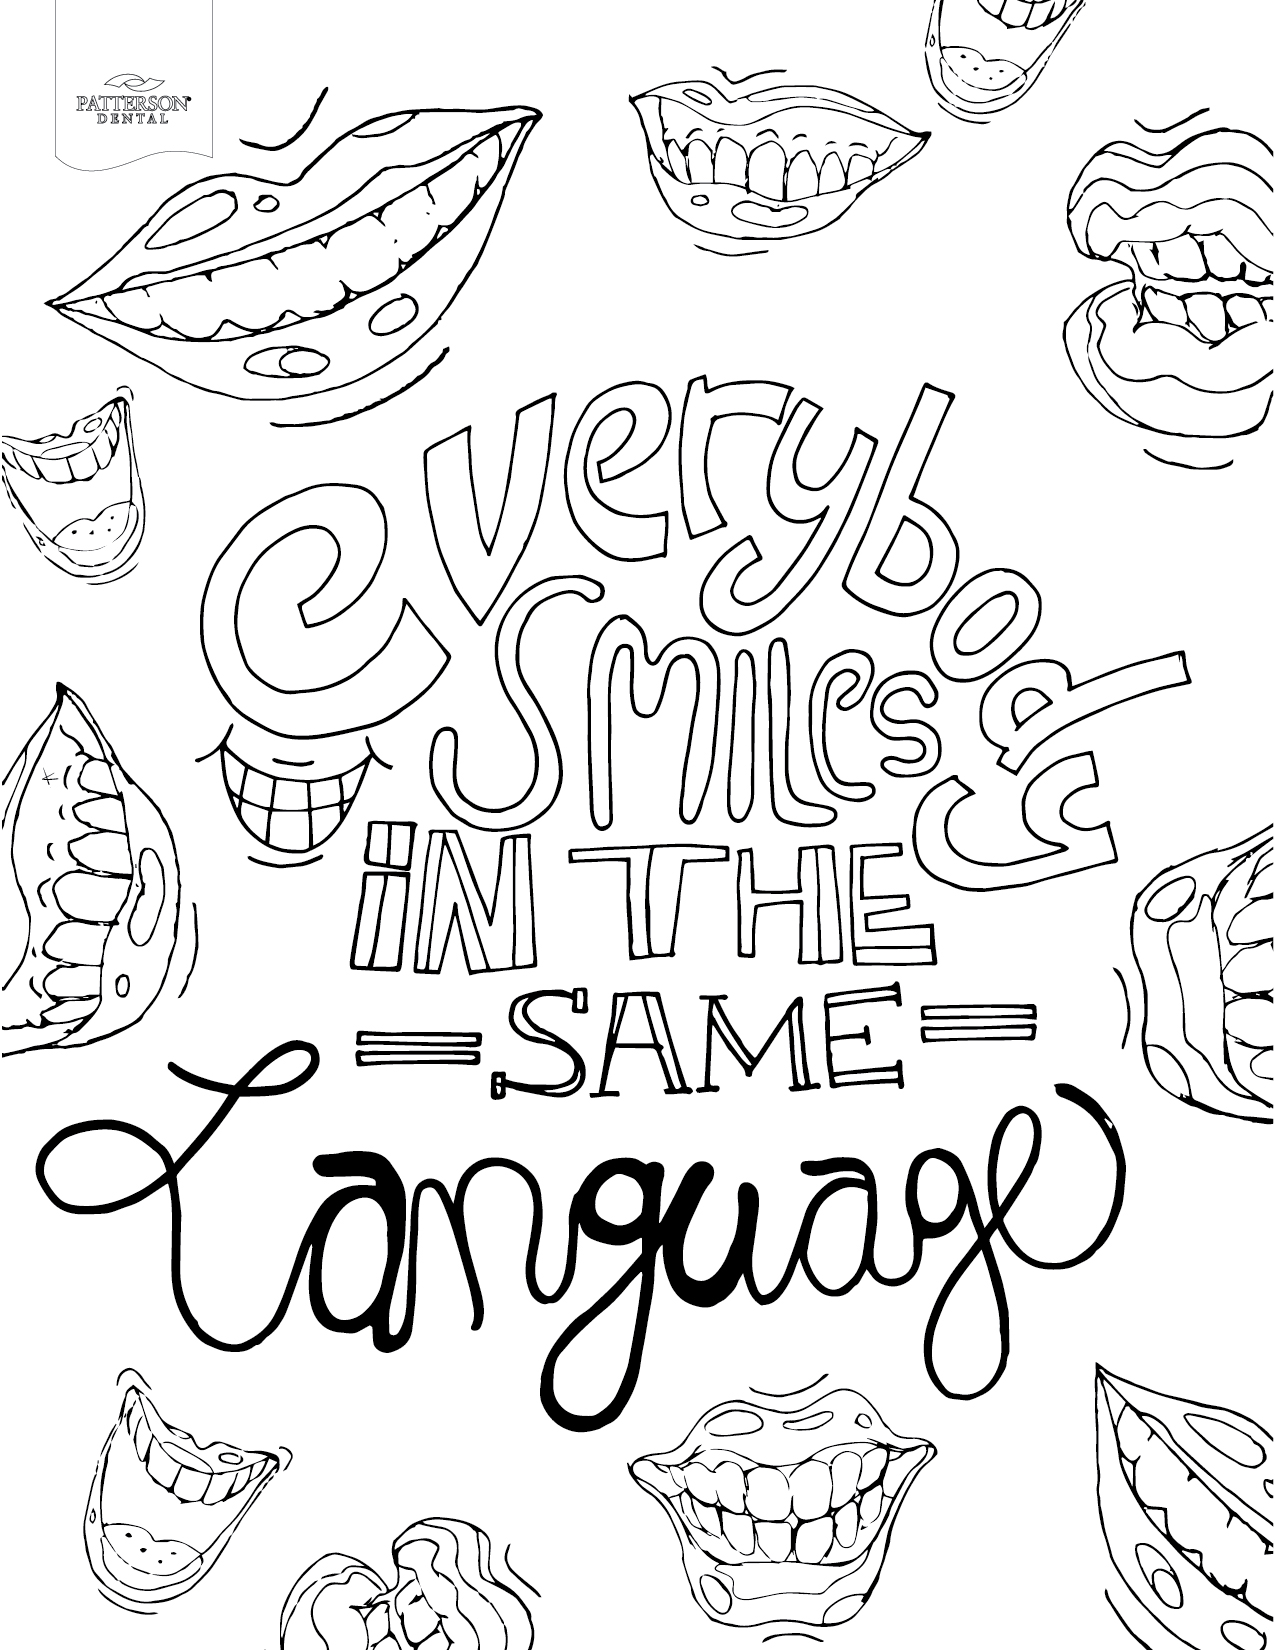 Colouring in pages dental - Everybody Smiles In The Same Language Coloring Page From Patterson Dental